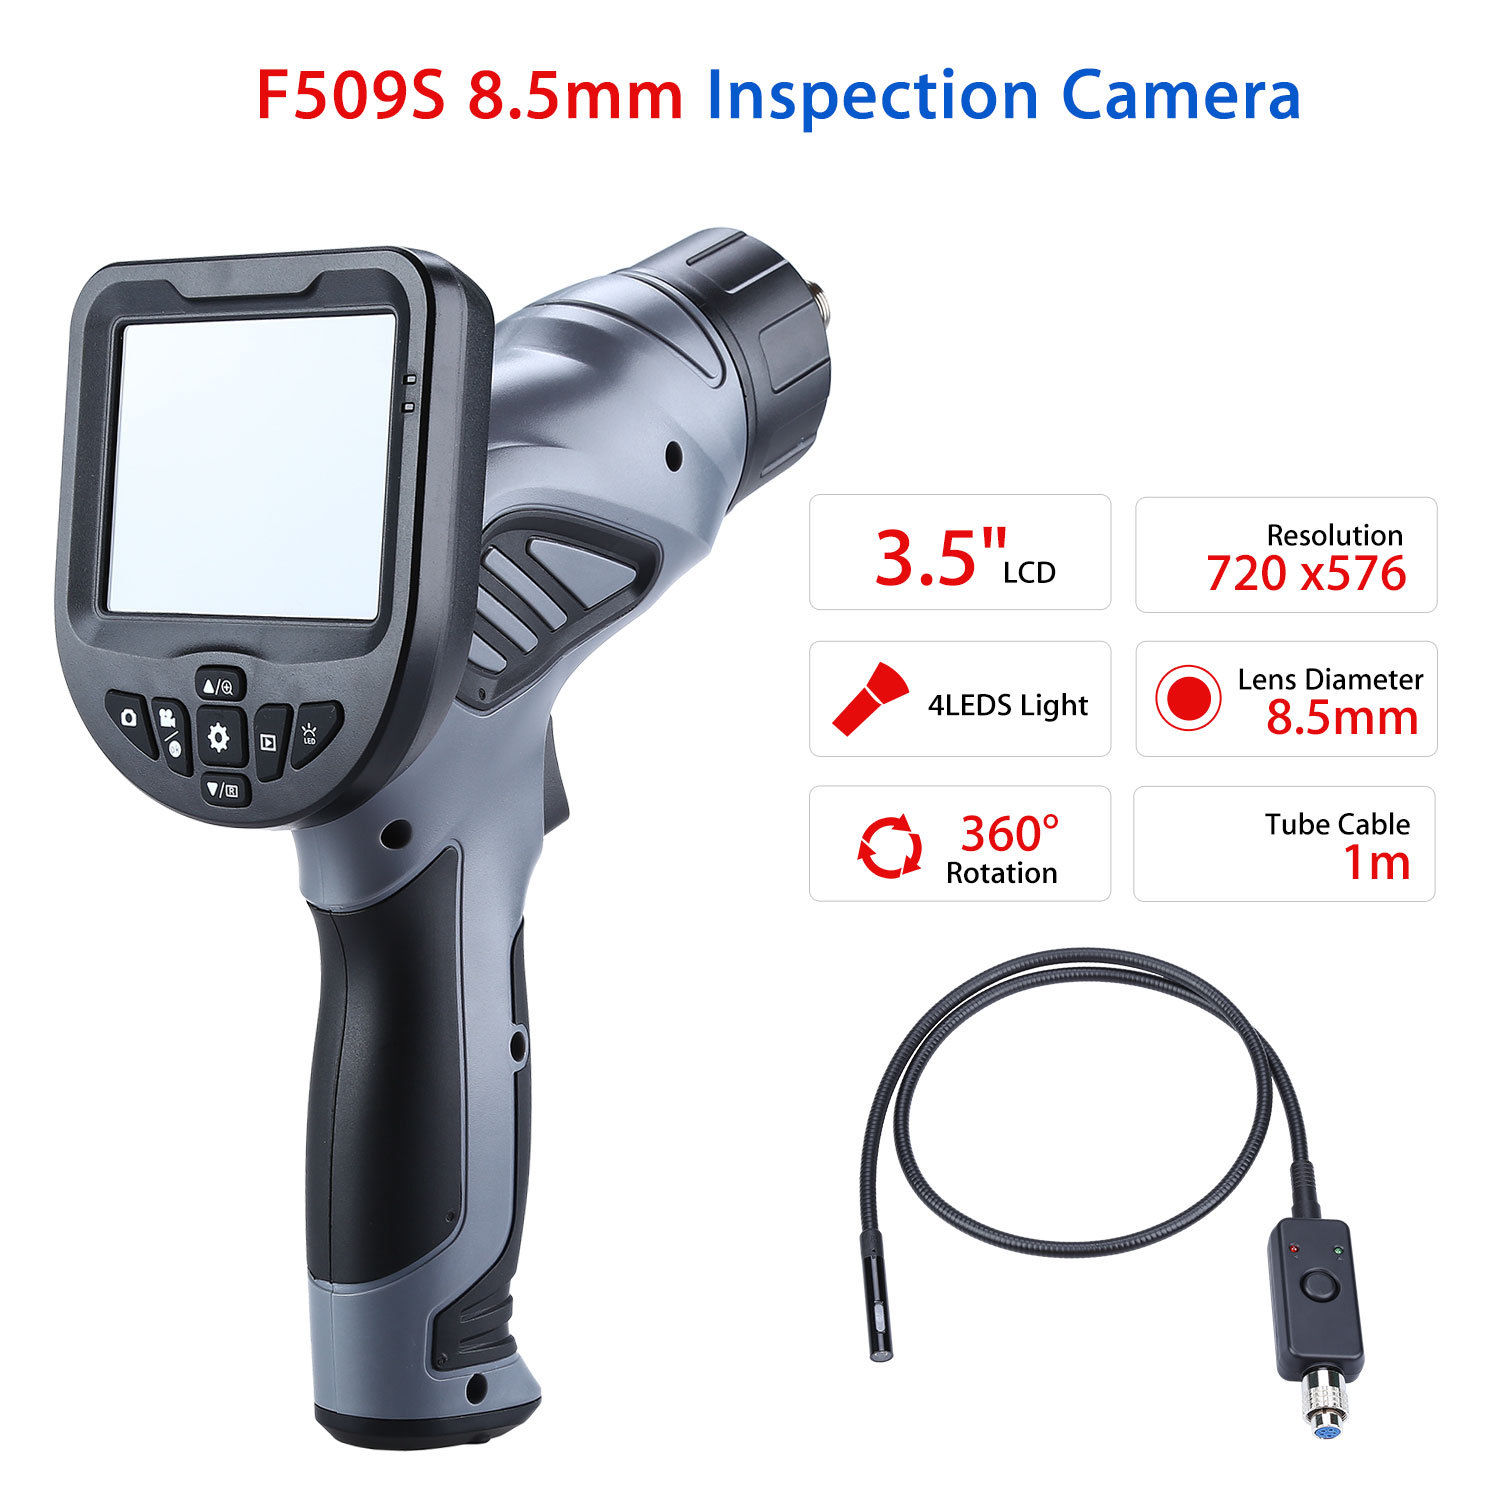 Blueskysea 3.5 LCD CMOS  IP67 Endoscope Inspection Borescope Dia 8.5mm Tube Snake Camera DVR Repair Tool W/ 4 LED Light blueskysea nts200 endoscope inspection camera with 3 5 inch lcd monitor 8 2mm diameter 1 meter tube borescope zoom rotate flip